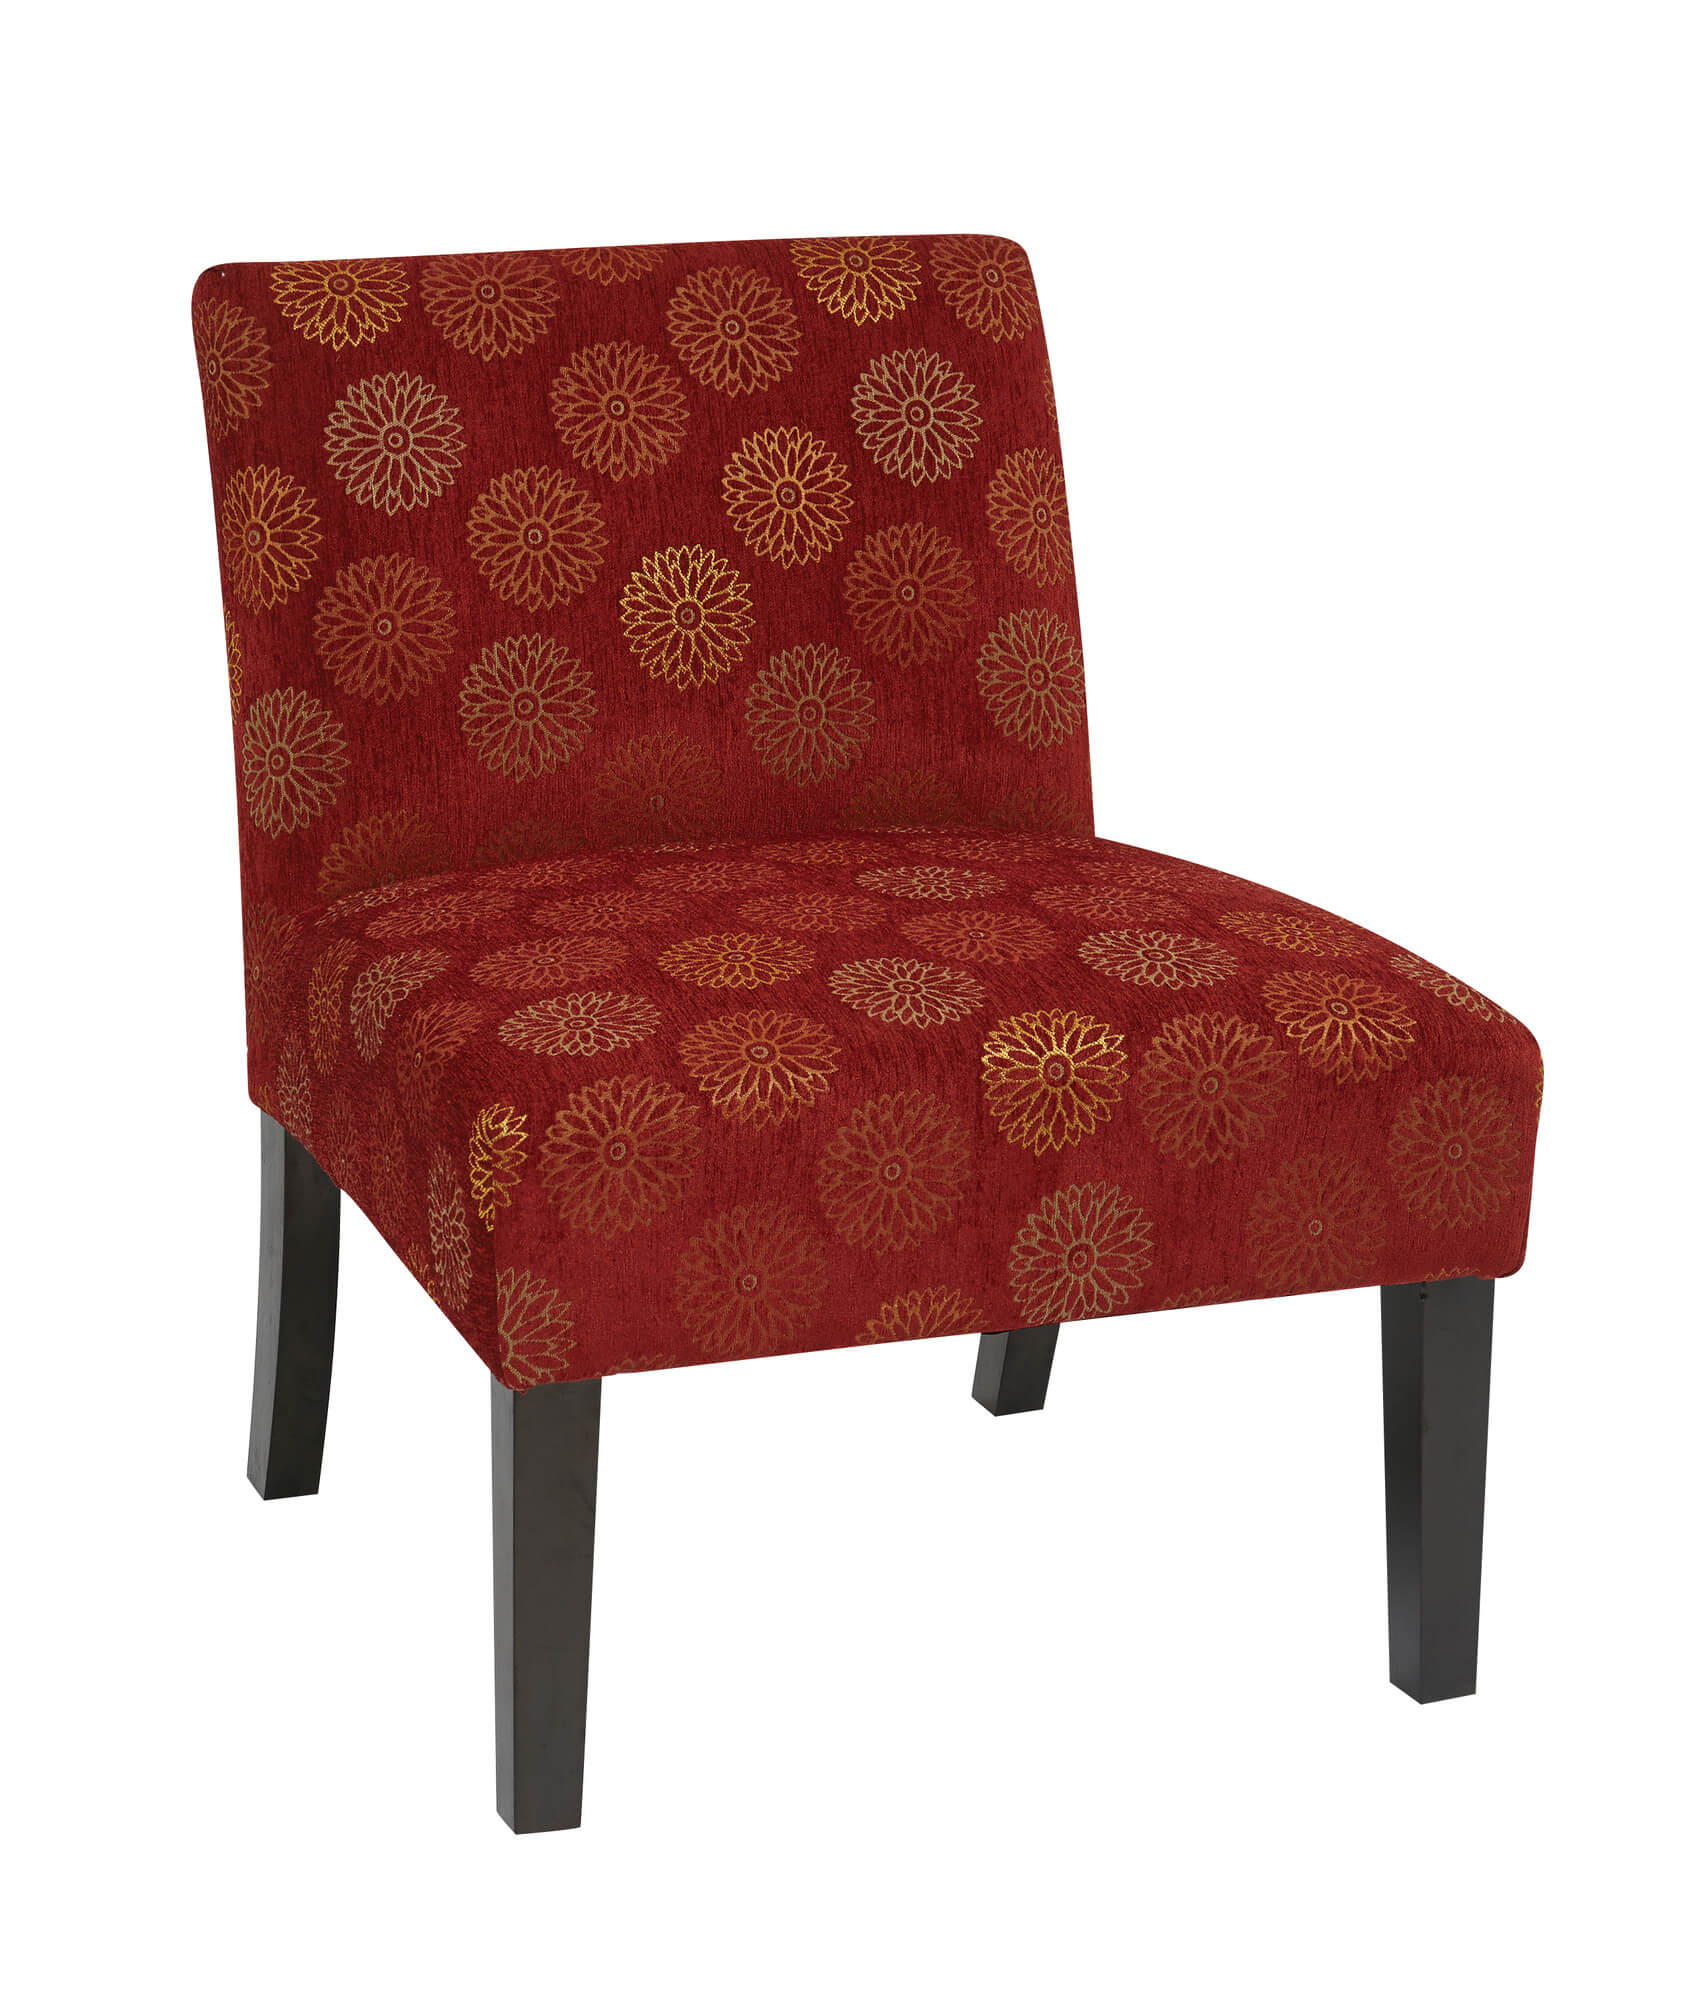 Hereu0027s A Classic Accent Chair In That It Offers A Splash Of Color To A Dark  . Part 77